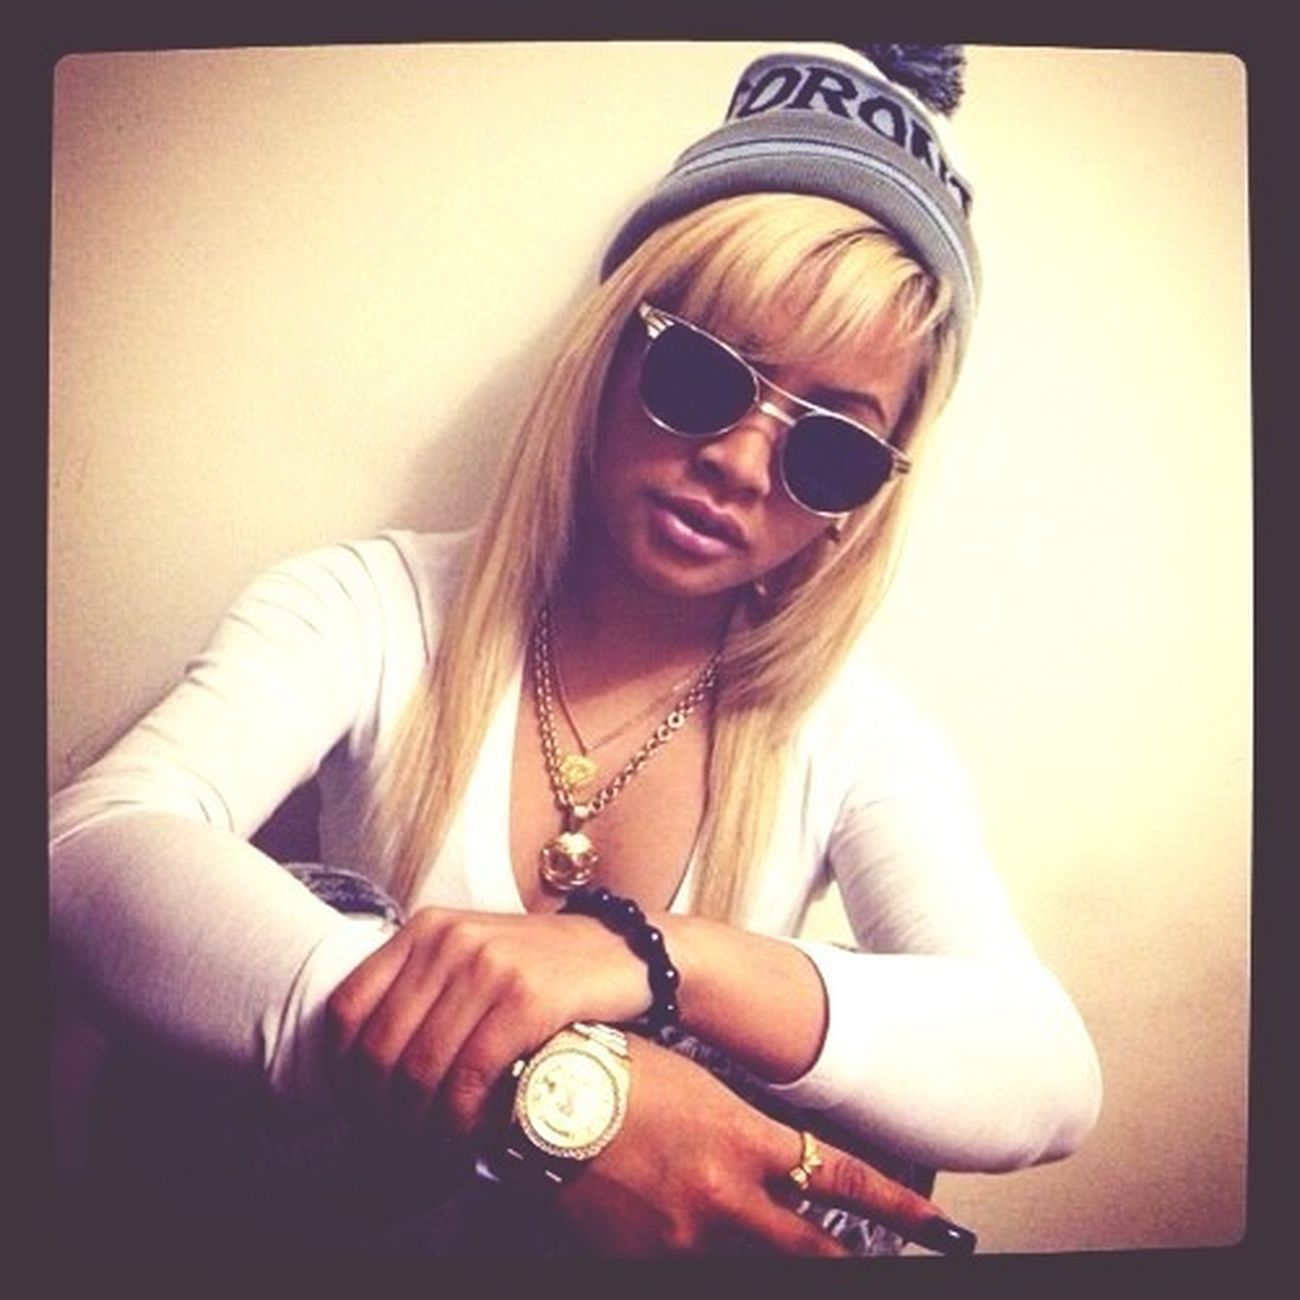 Honey Cocaine!:D